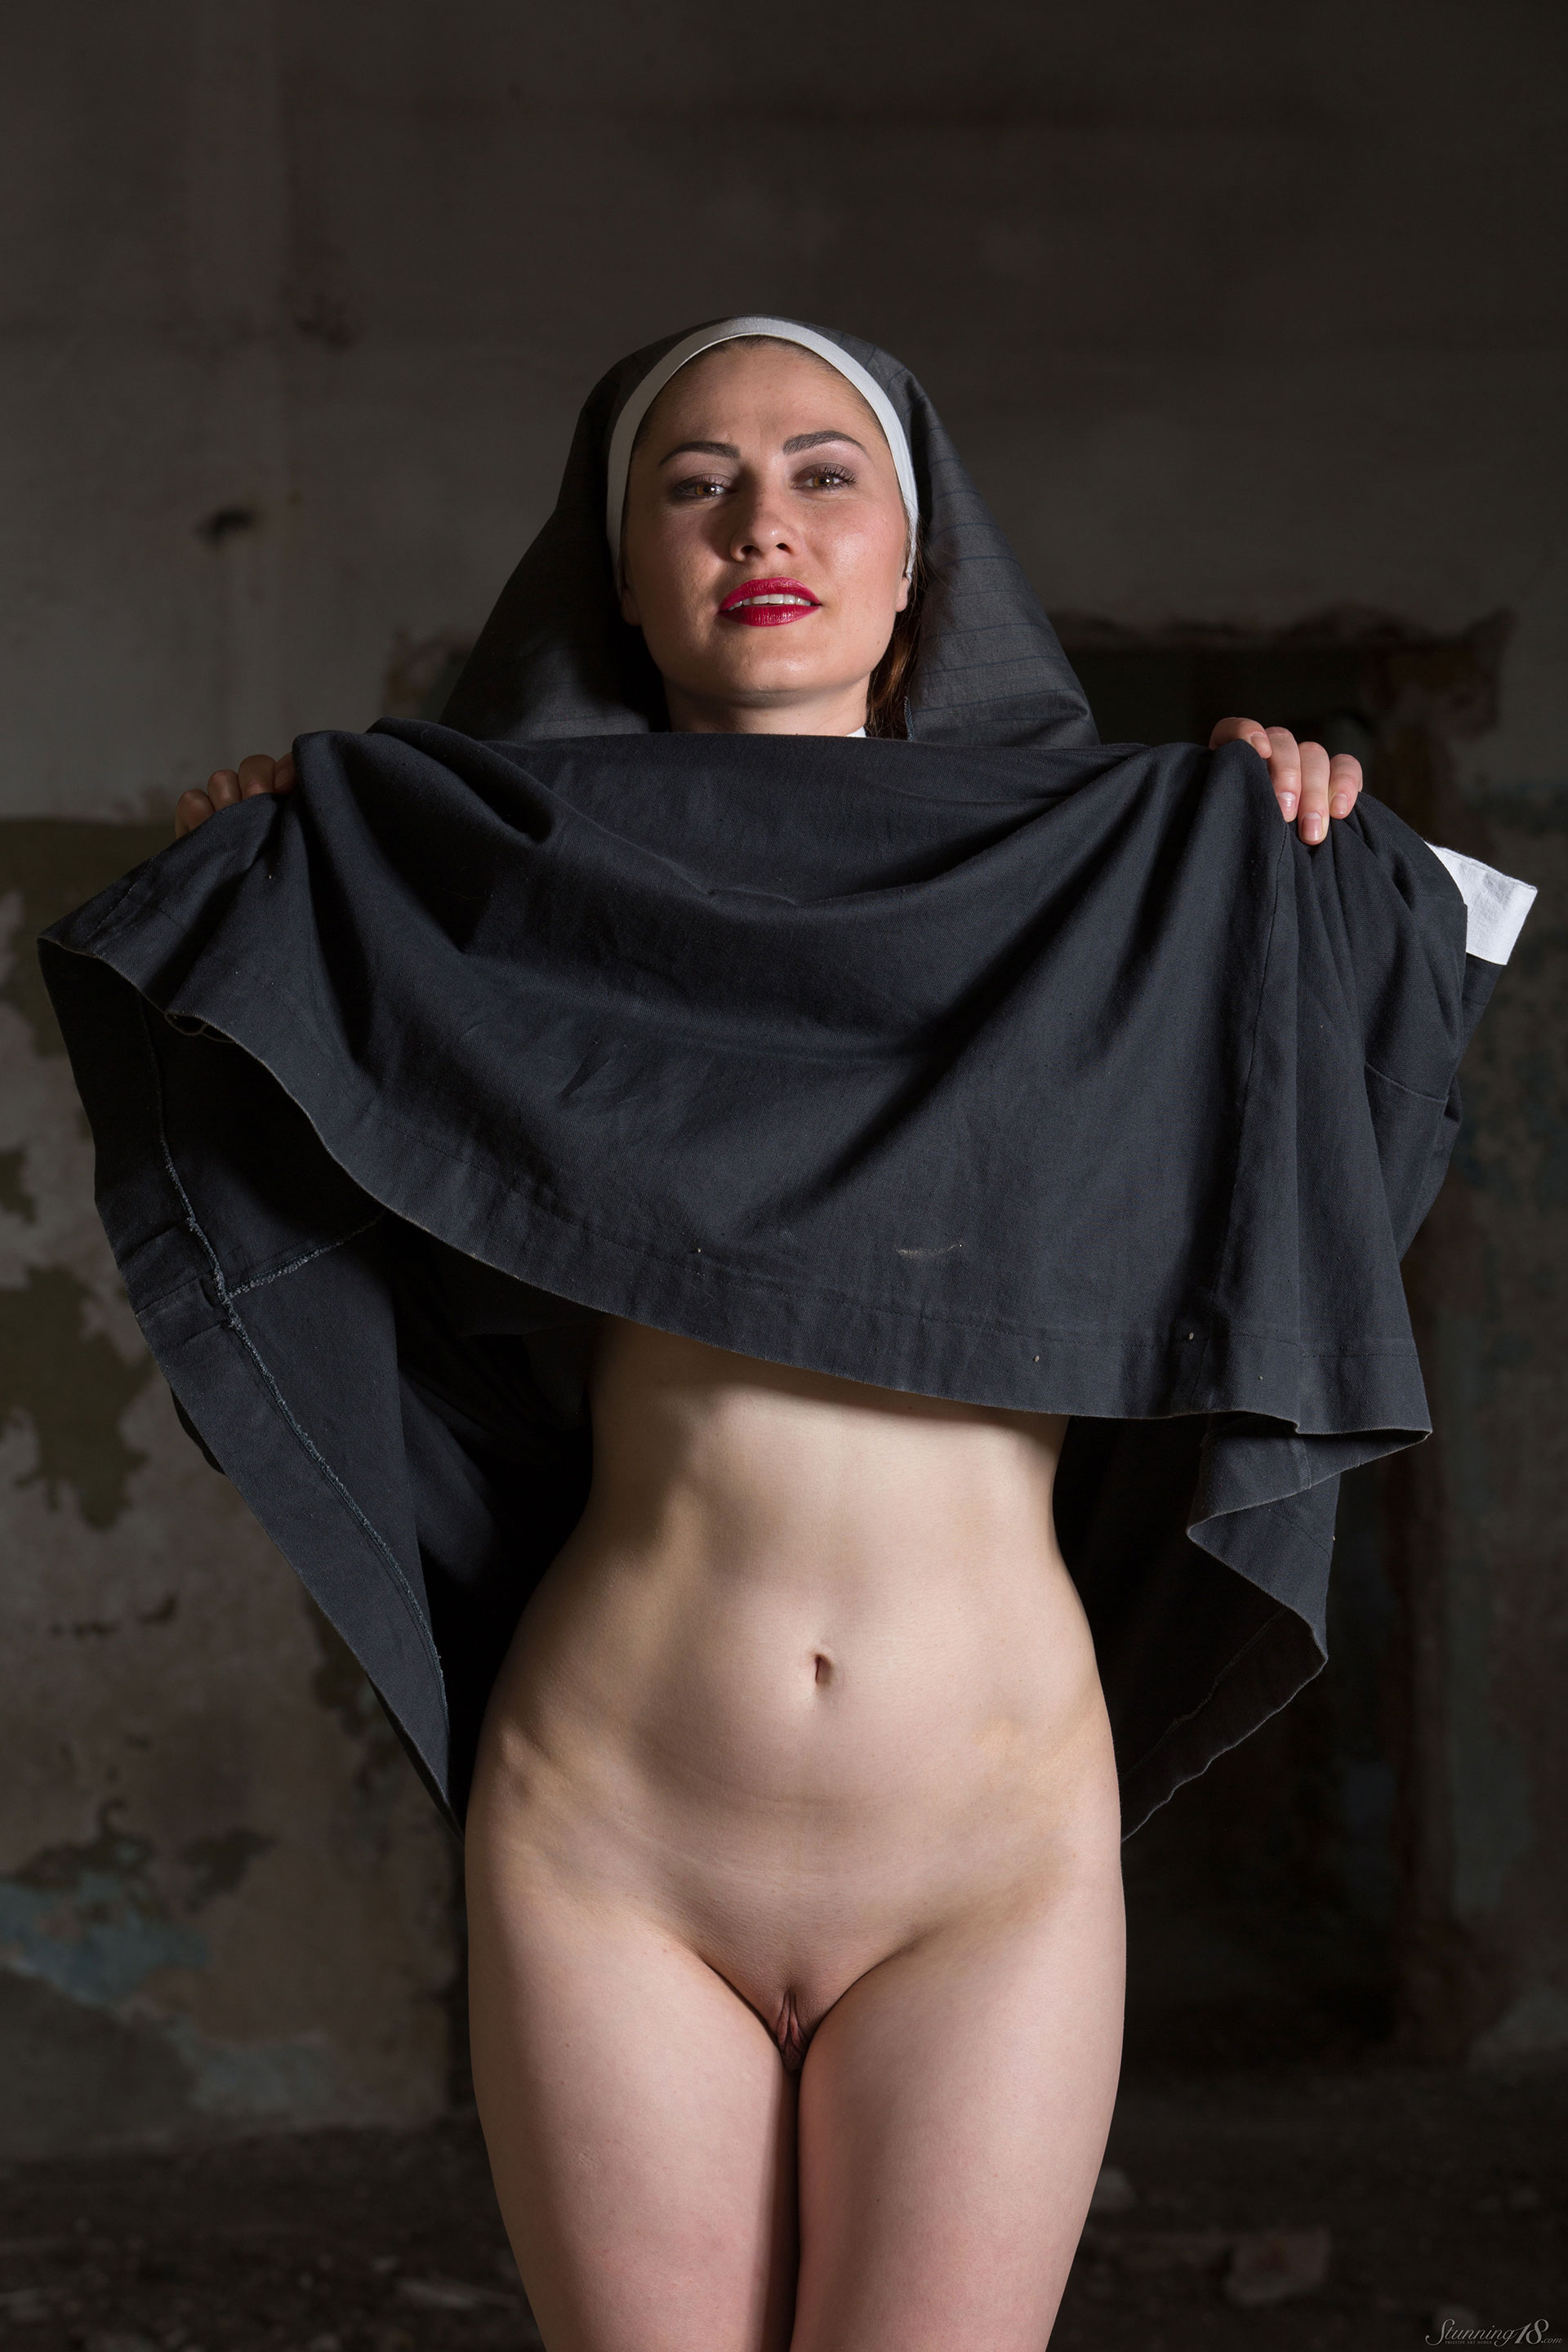 yuing-xxx-nude-nun-how-facial-bleach